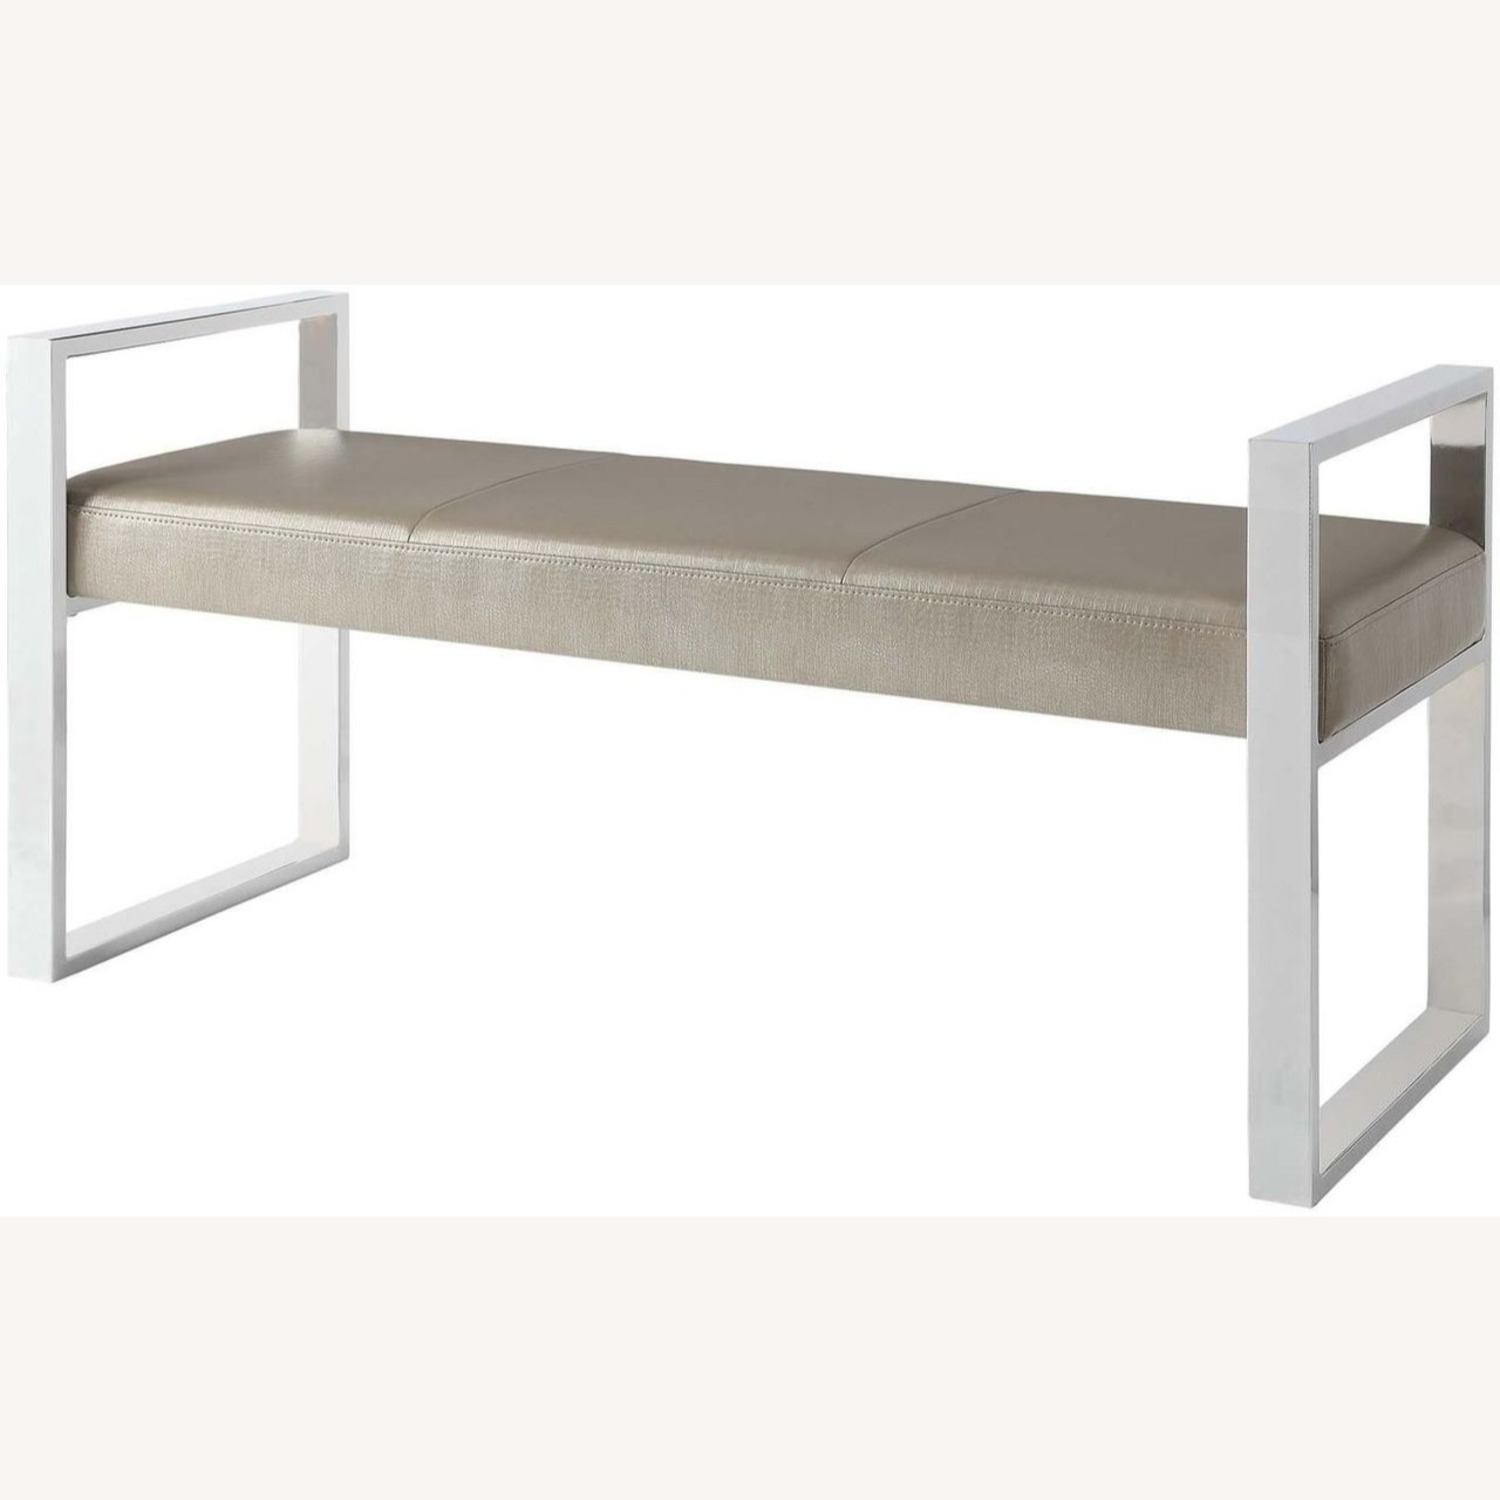 Bench In Champagne Leatherette W/ Chrome Base - image-1